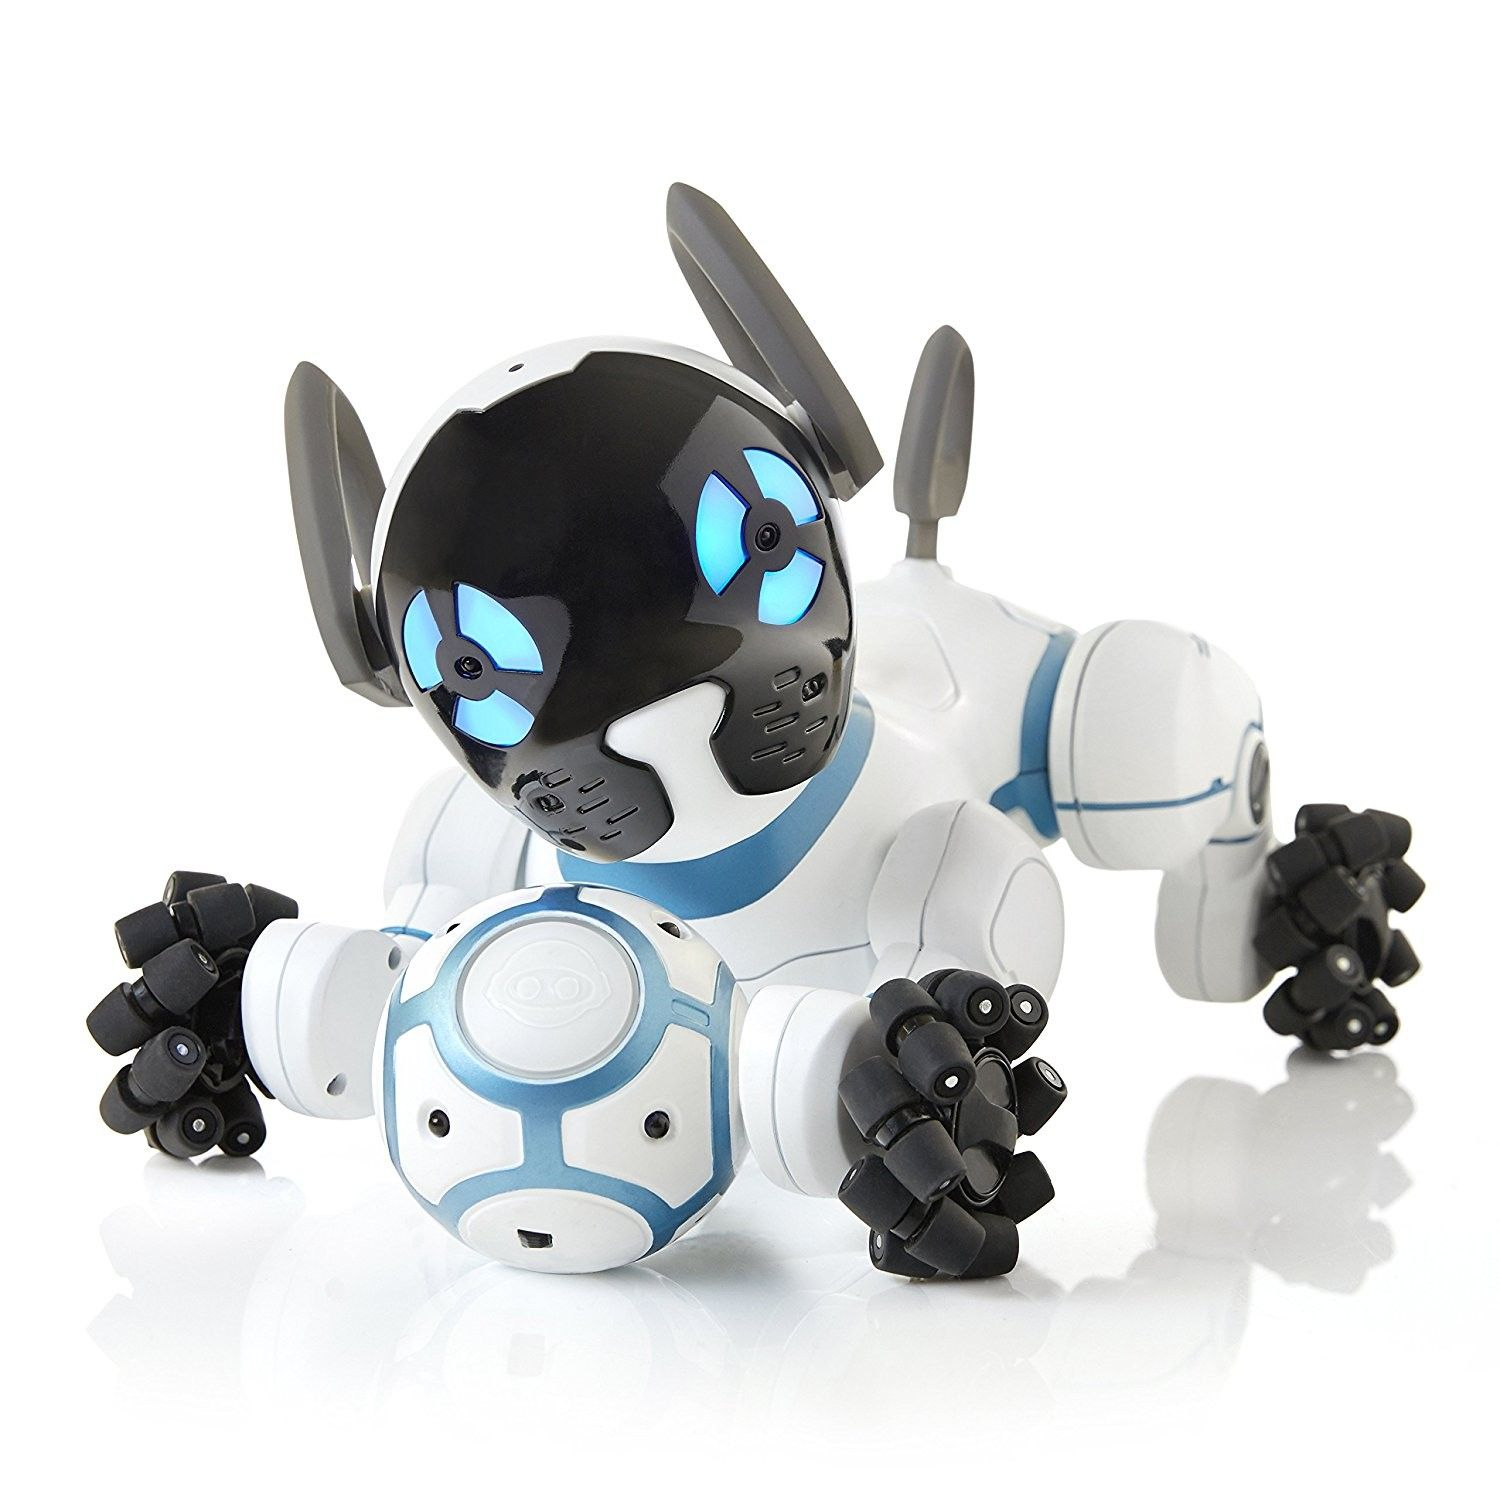 Chip, le chien robot intelligent